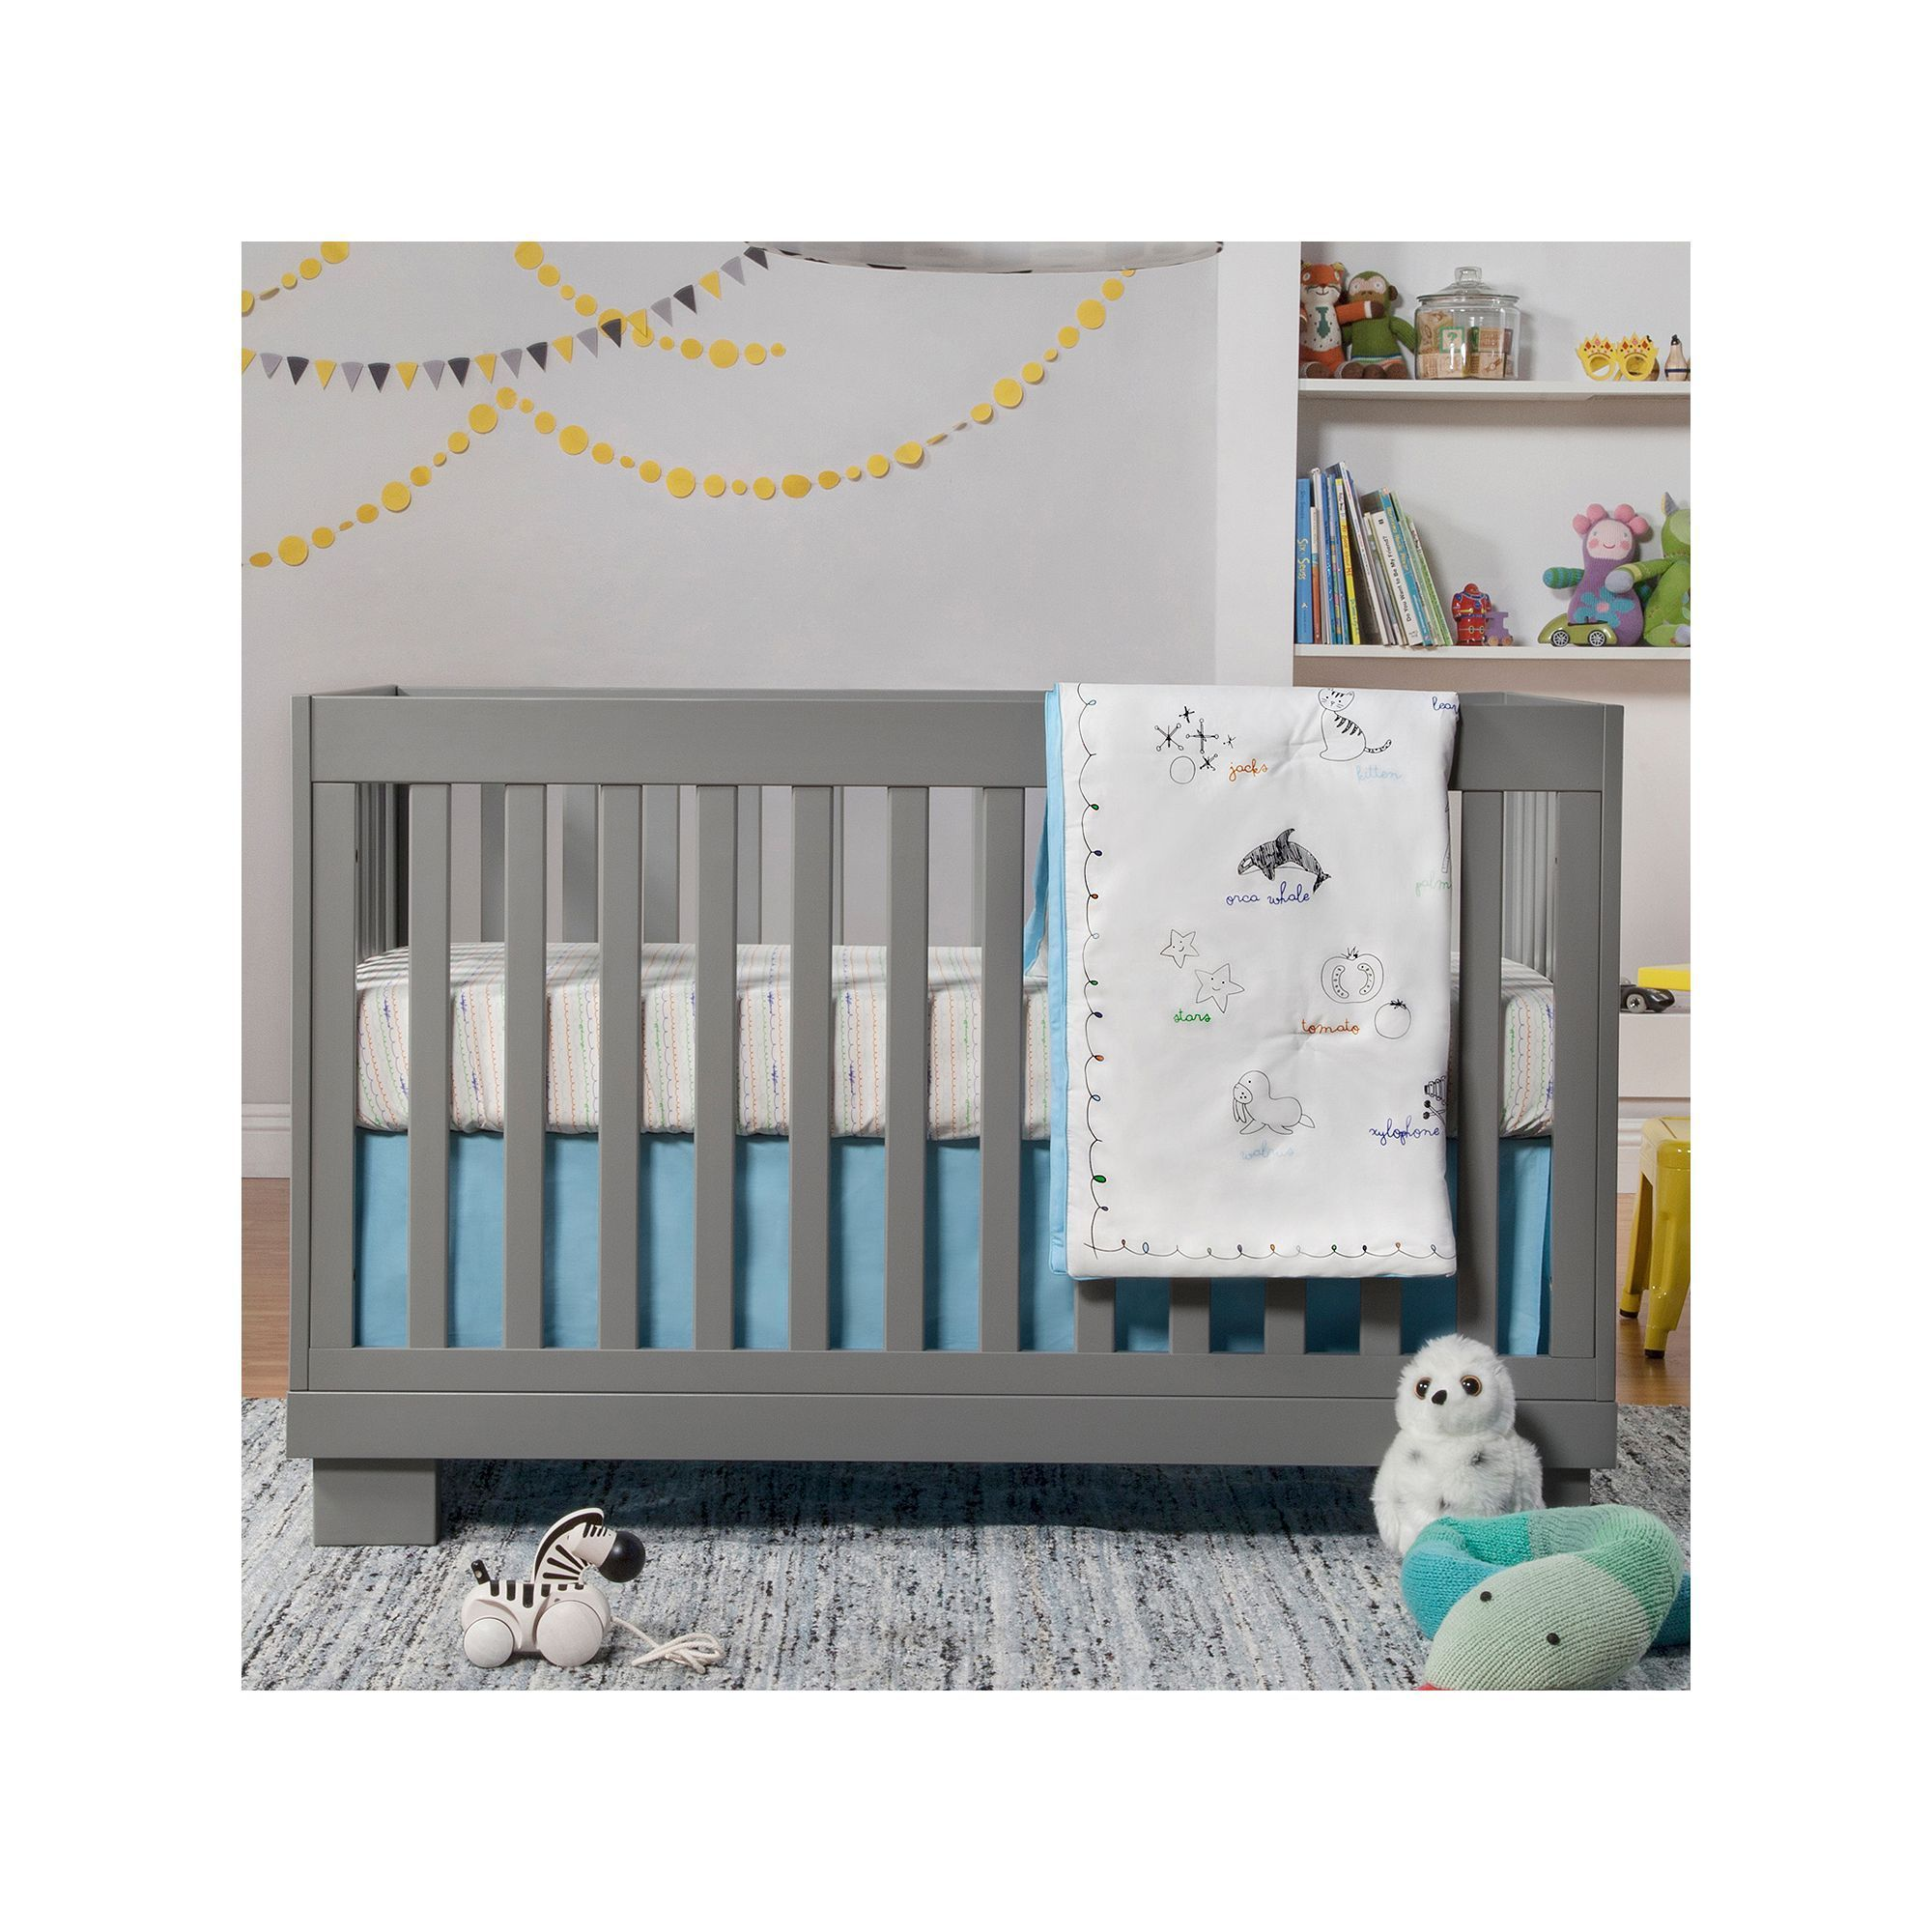 hayneedle divinci product cribs cfm inuse modo crib convertible autumn davinci in babyletto